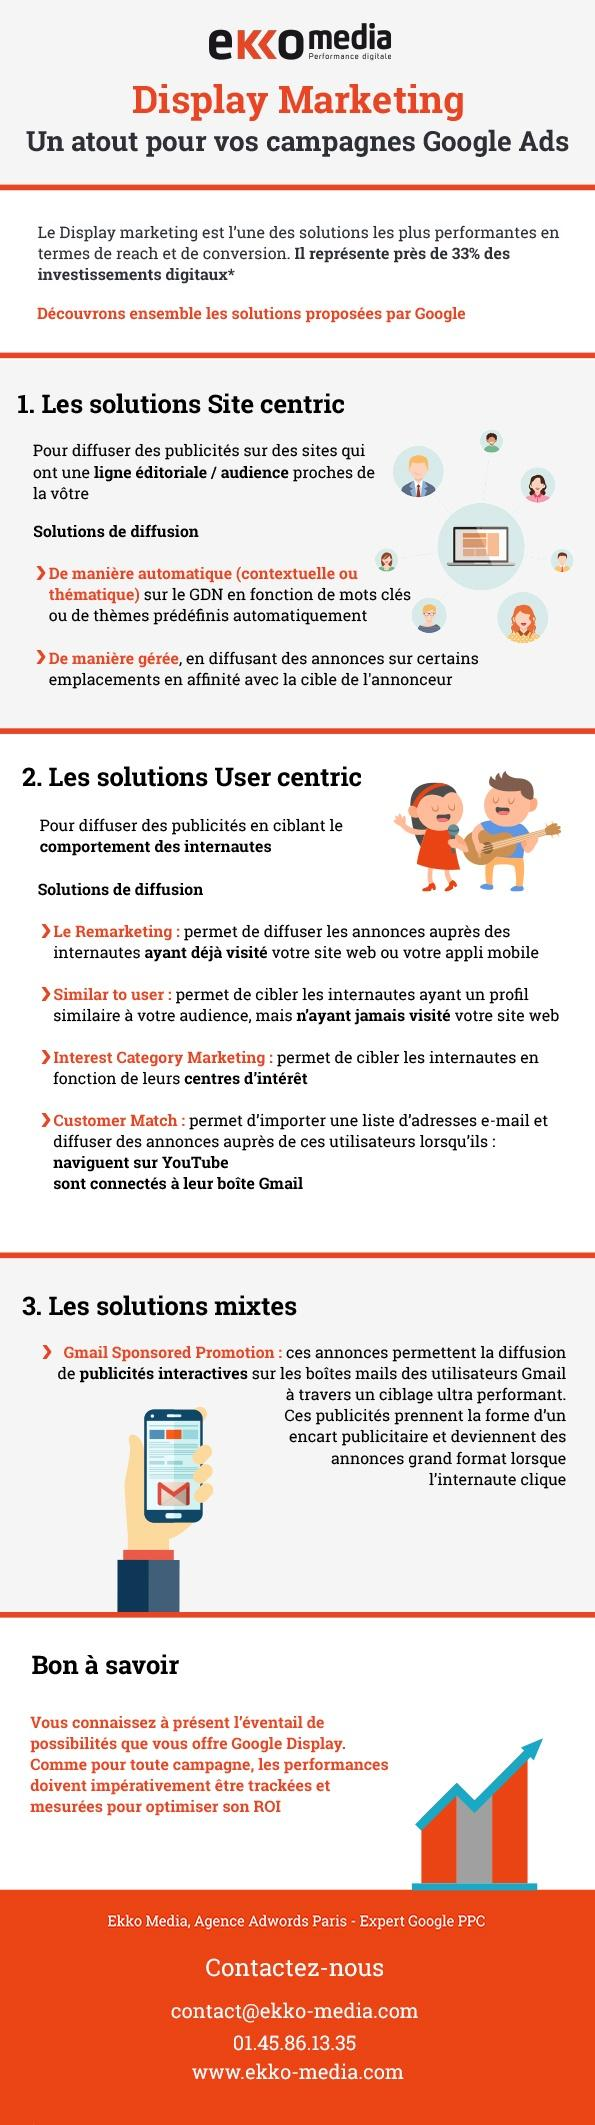 infographie-display-marketing-google-adwords